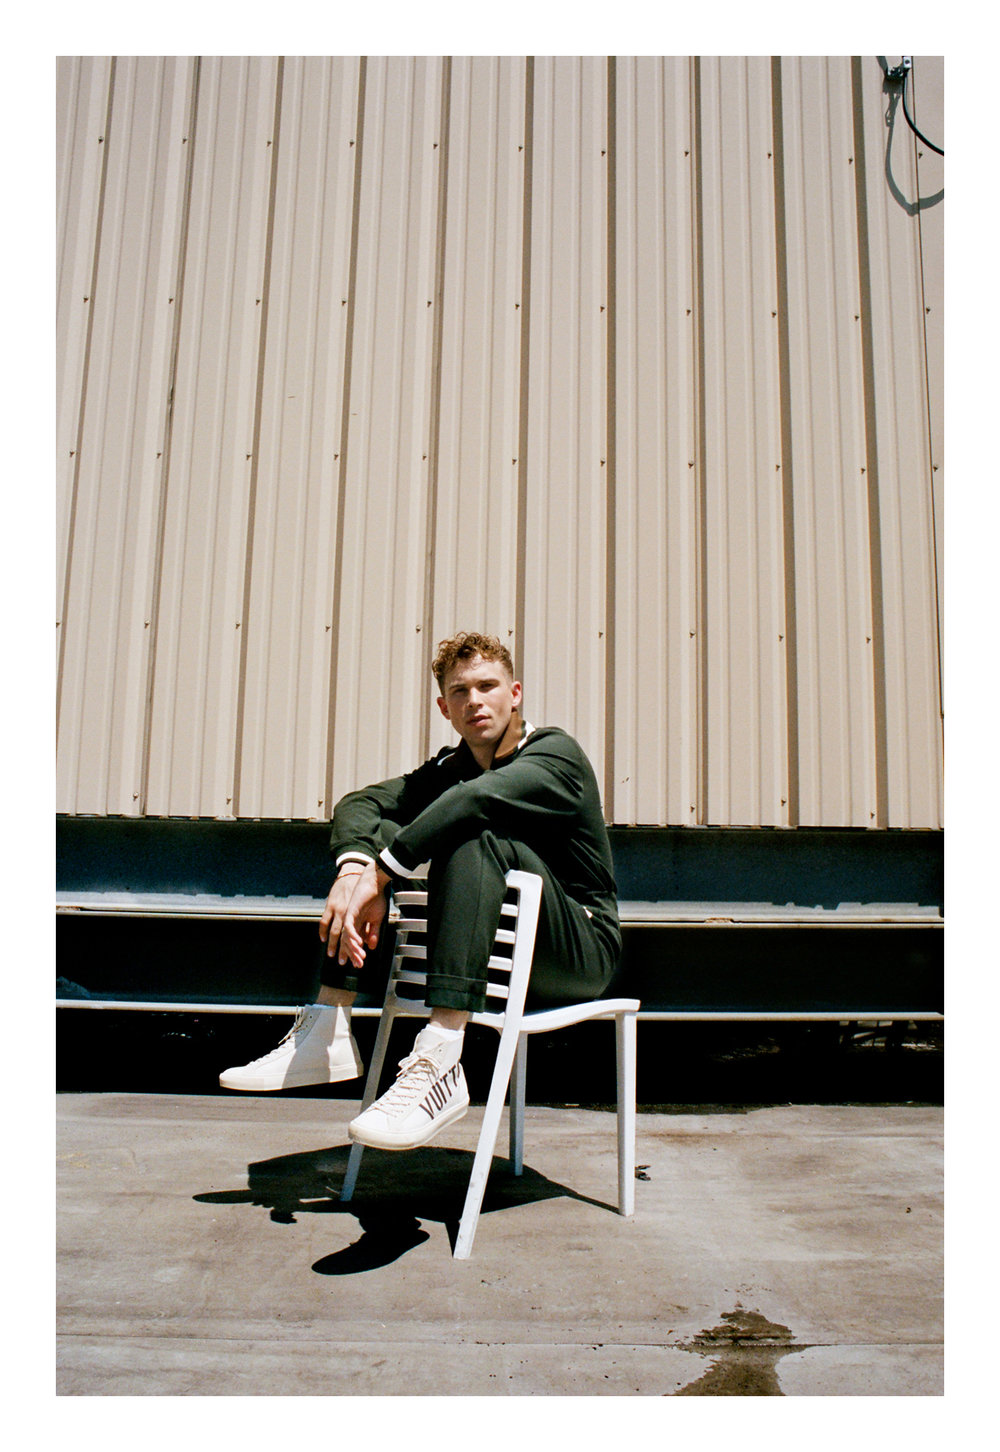 KATE OWEN | TOMMY DORFMAN | REFINERY29 / MEN FASHION PORTRAIT